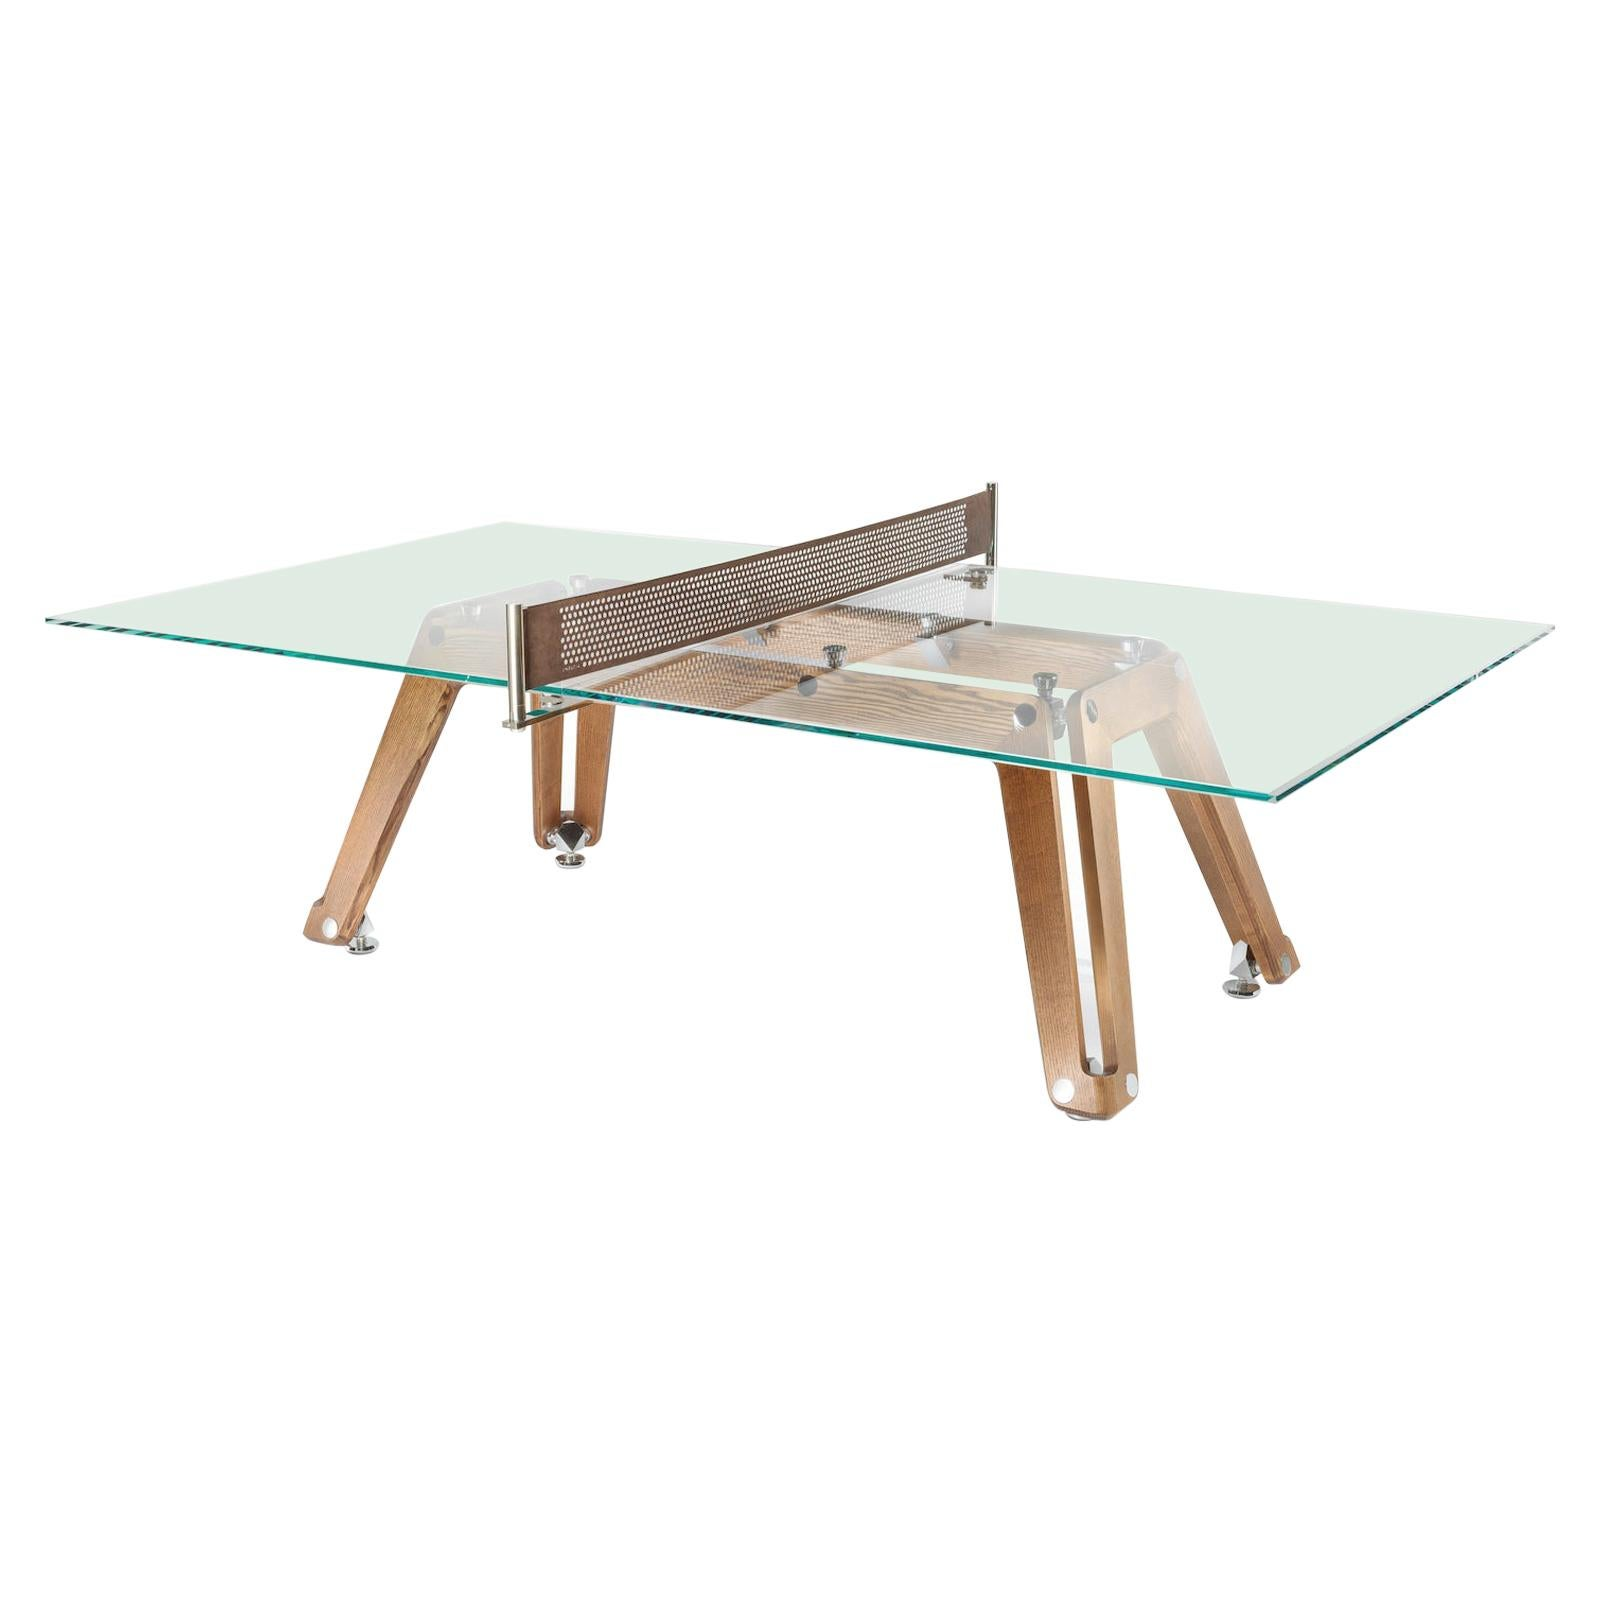 Lungolinea Wood, Contemporary Design Table Tennis/ Ping Pong Table by Impatia